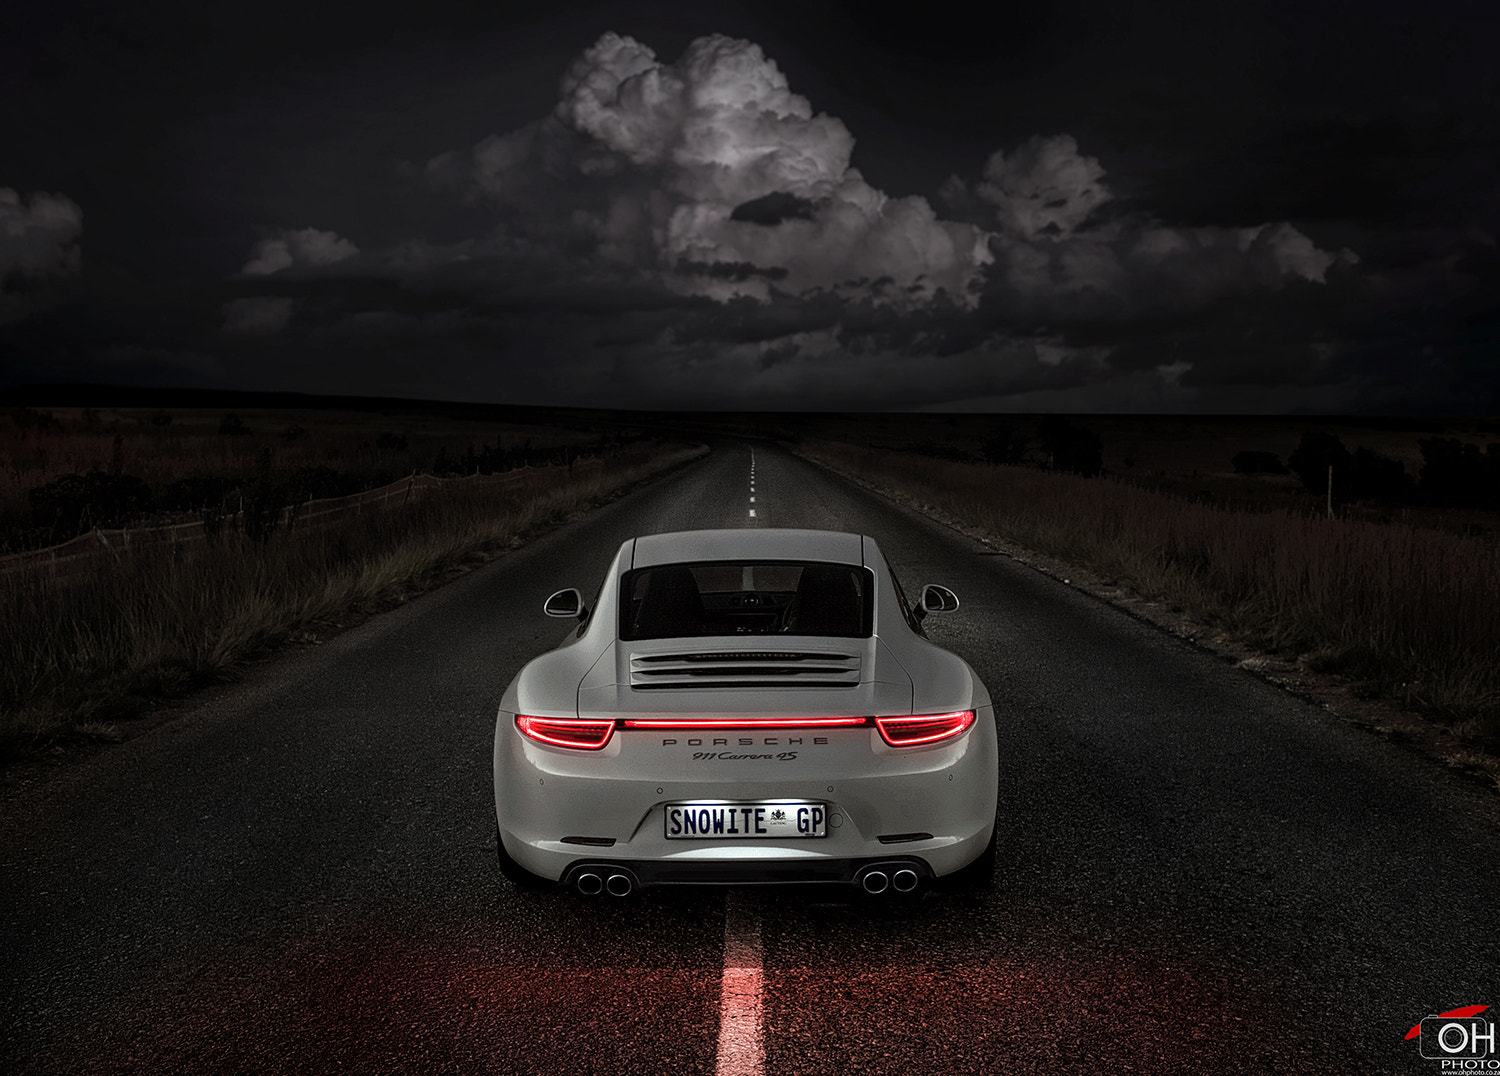 Photograph Porsche 911 Heading Into Doom by Oliver H on 500px